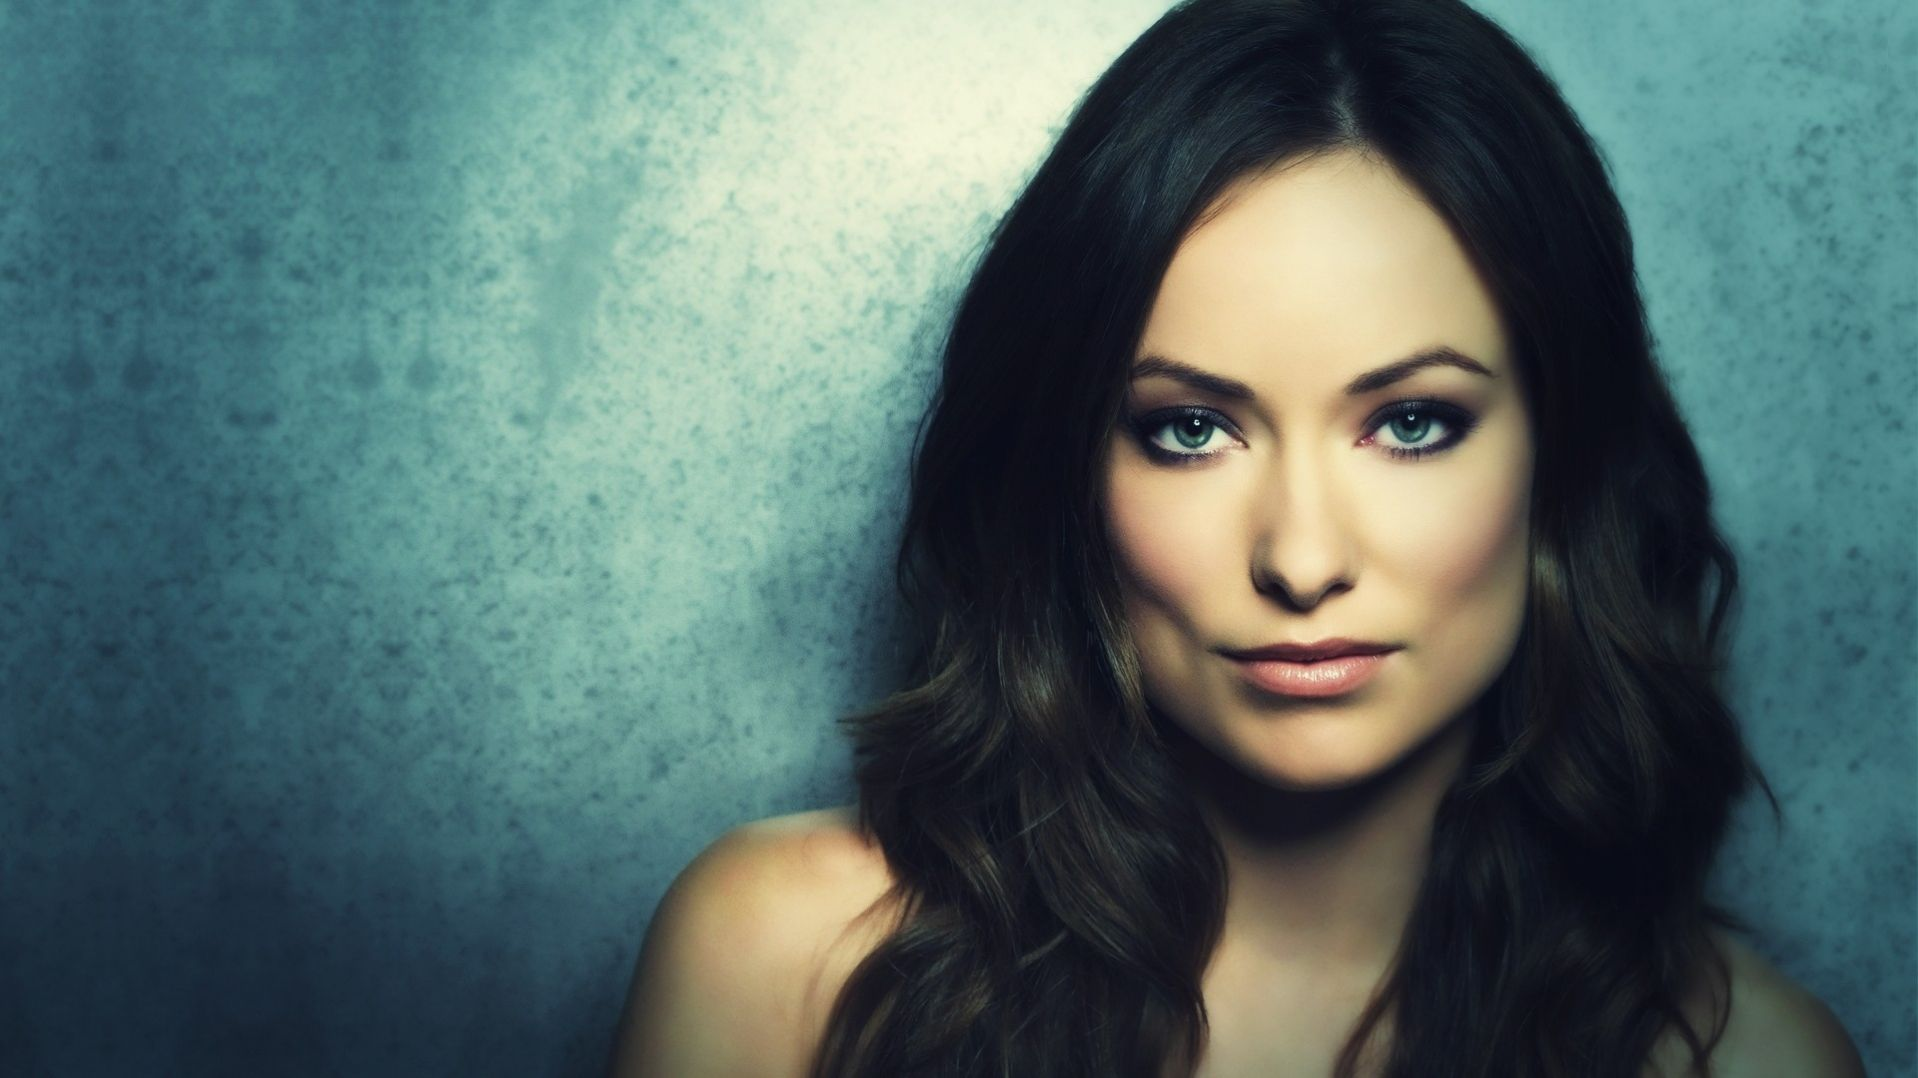 Check Out Olivia Wilde Hd Wallpapers We Add Quality